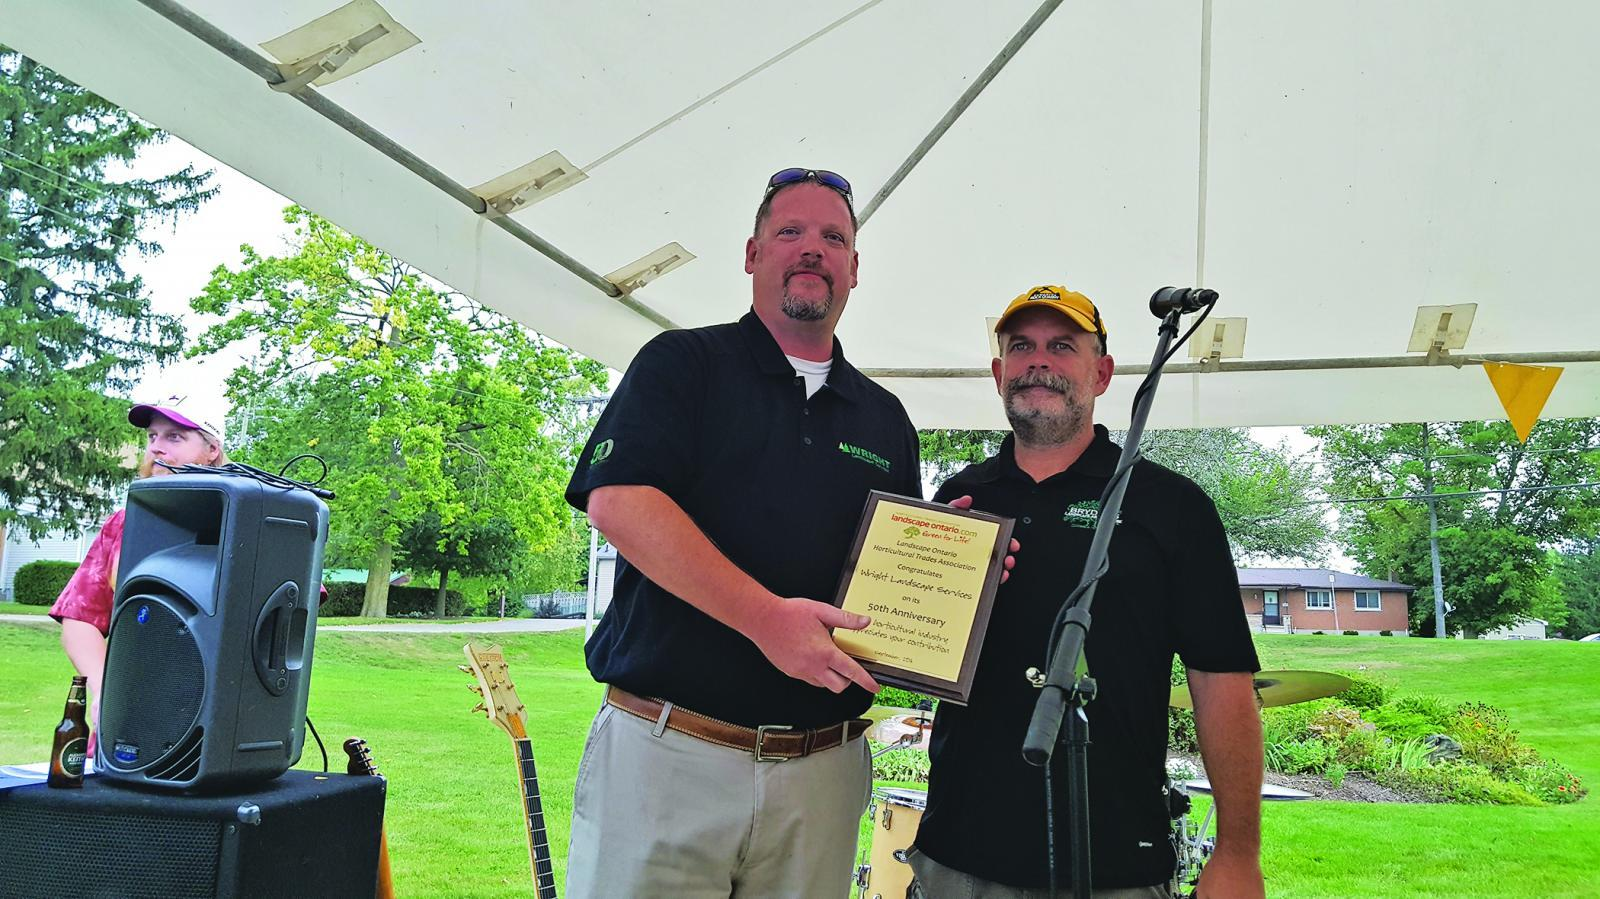 Dave Wright (left) accepts a plaque from LO President Paul Brydges.